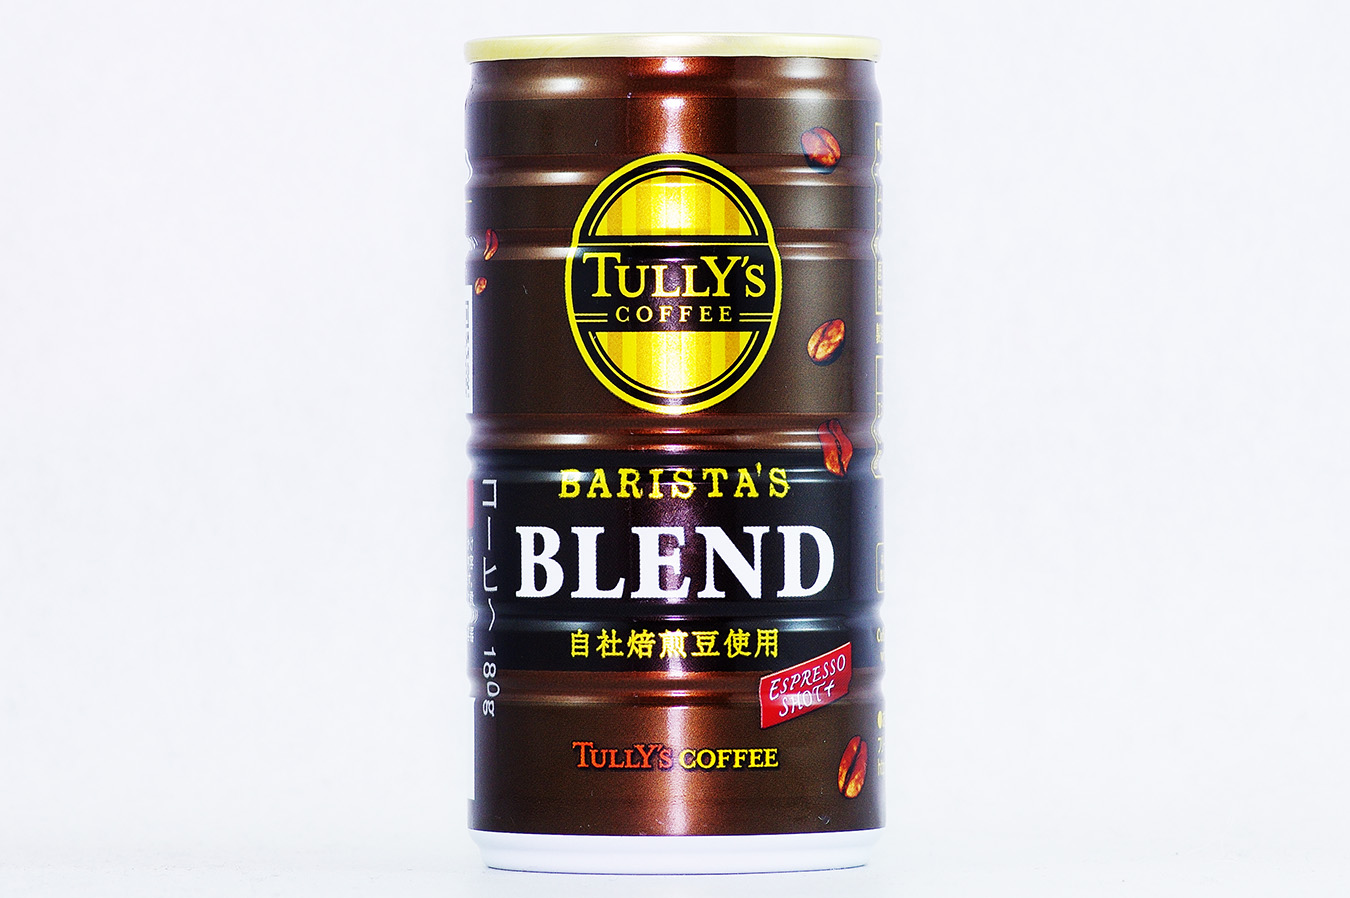 TULLY'S COFFEE BARISTA'S BLEND